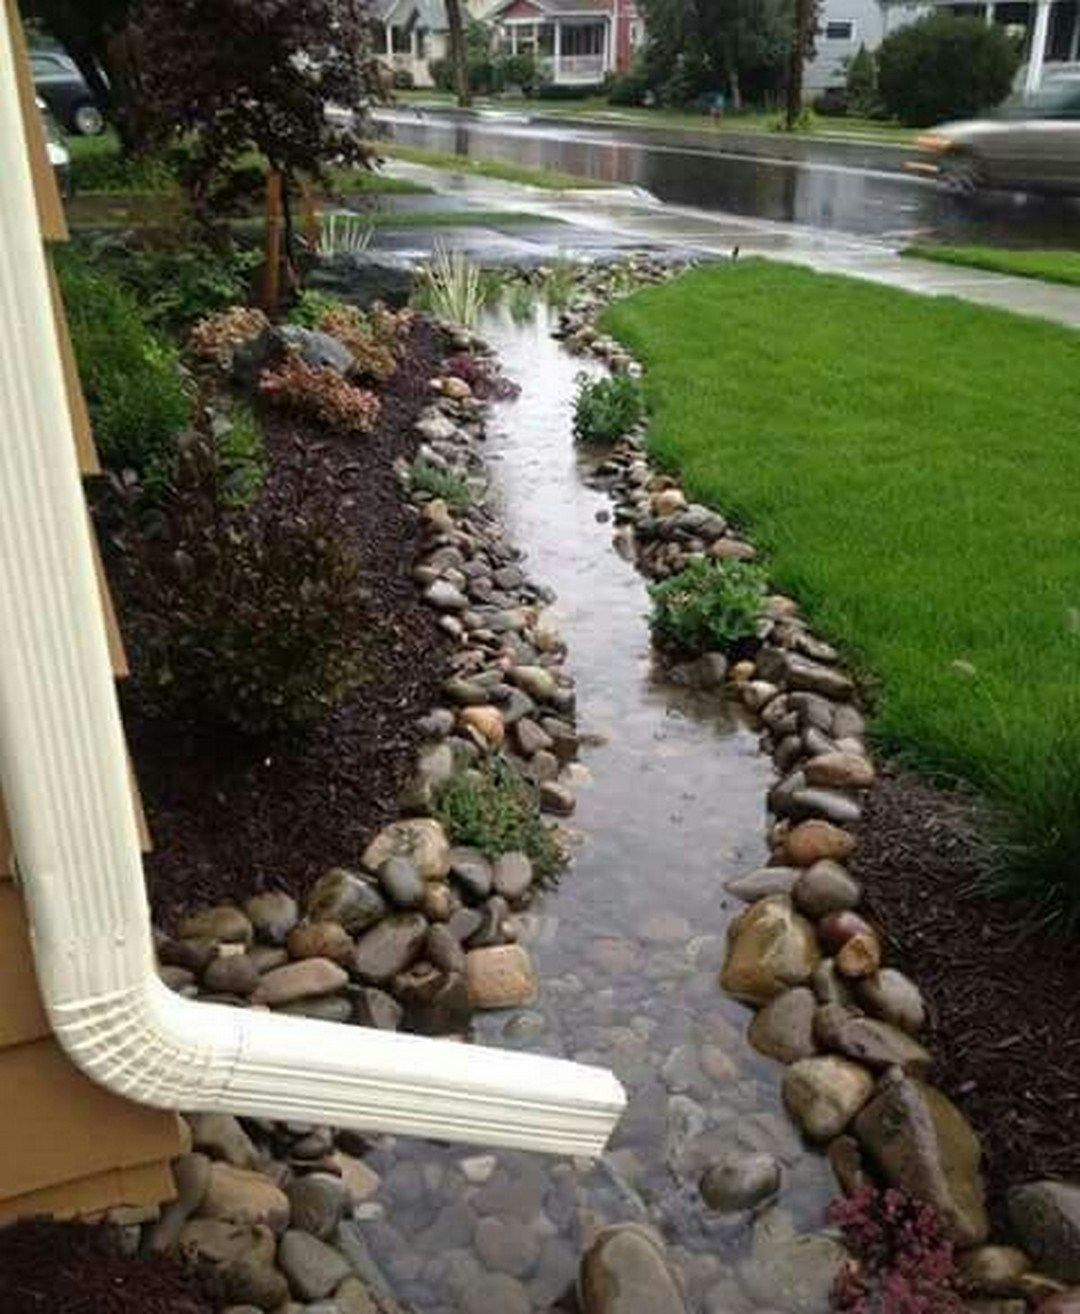 Landscaping ideas for front yard with porch   Simple Front Yard Landscaping Ideas on A Budget  Front yards